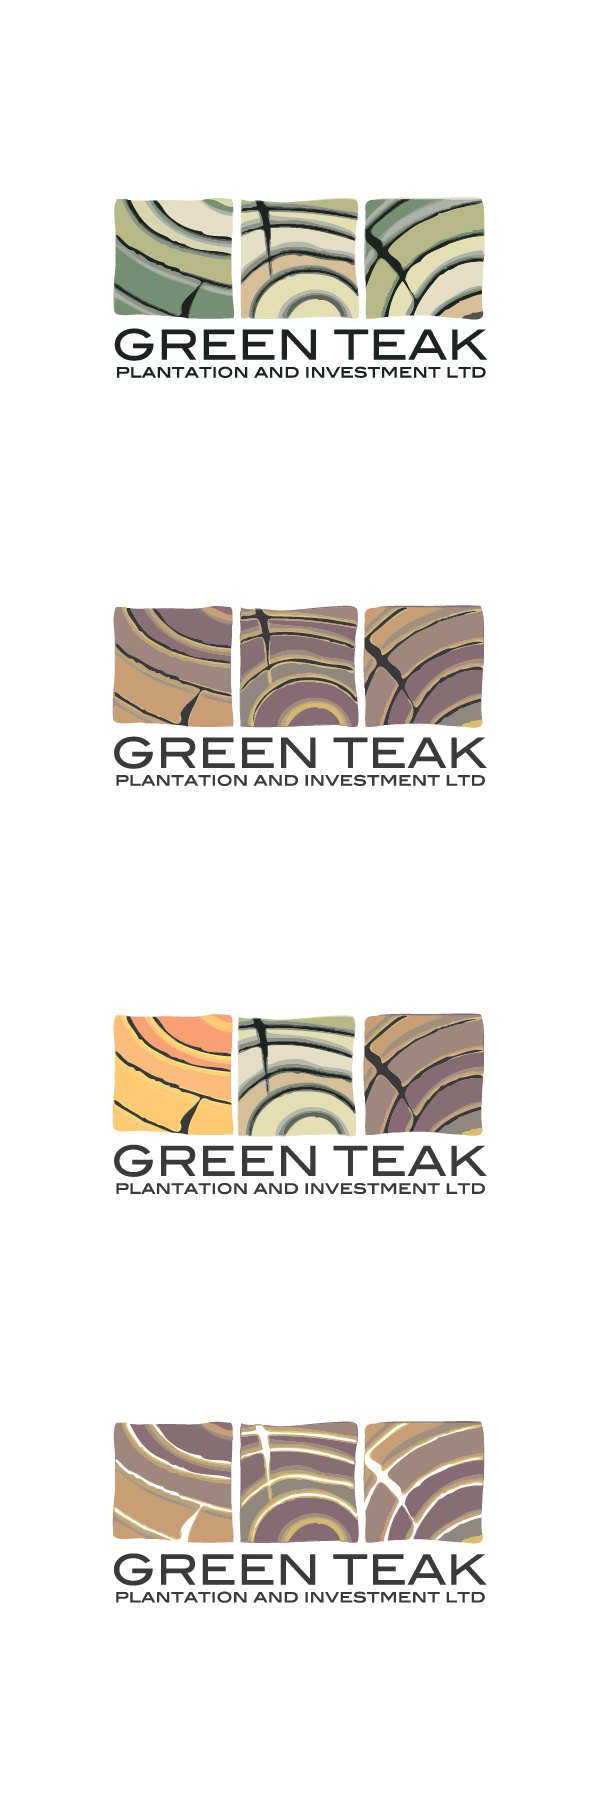 Create a Logo for a new Company growing a sustainable Teak tree Plantation